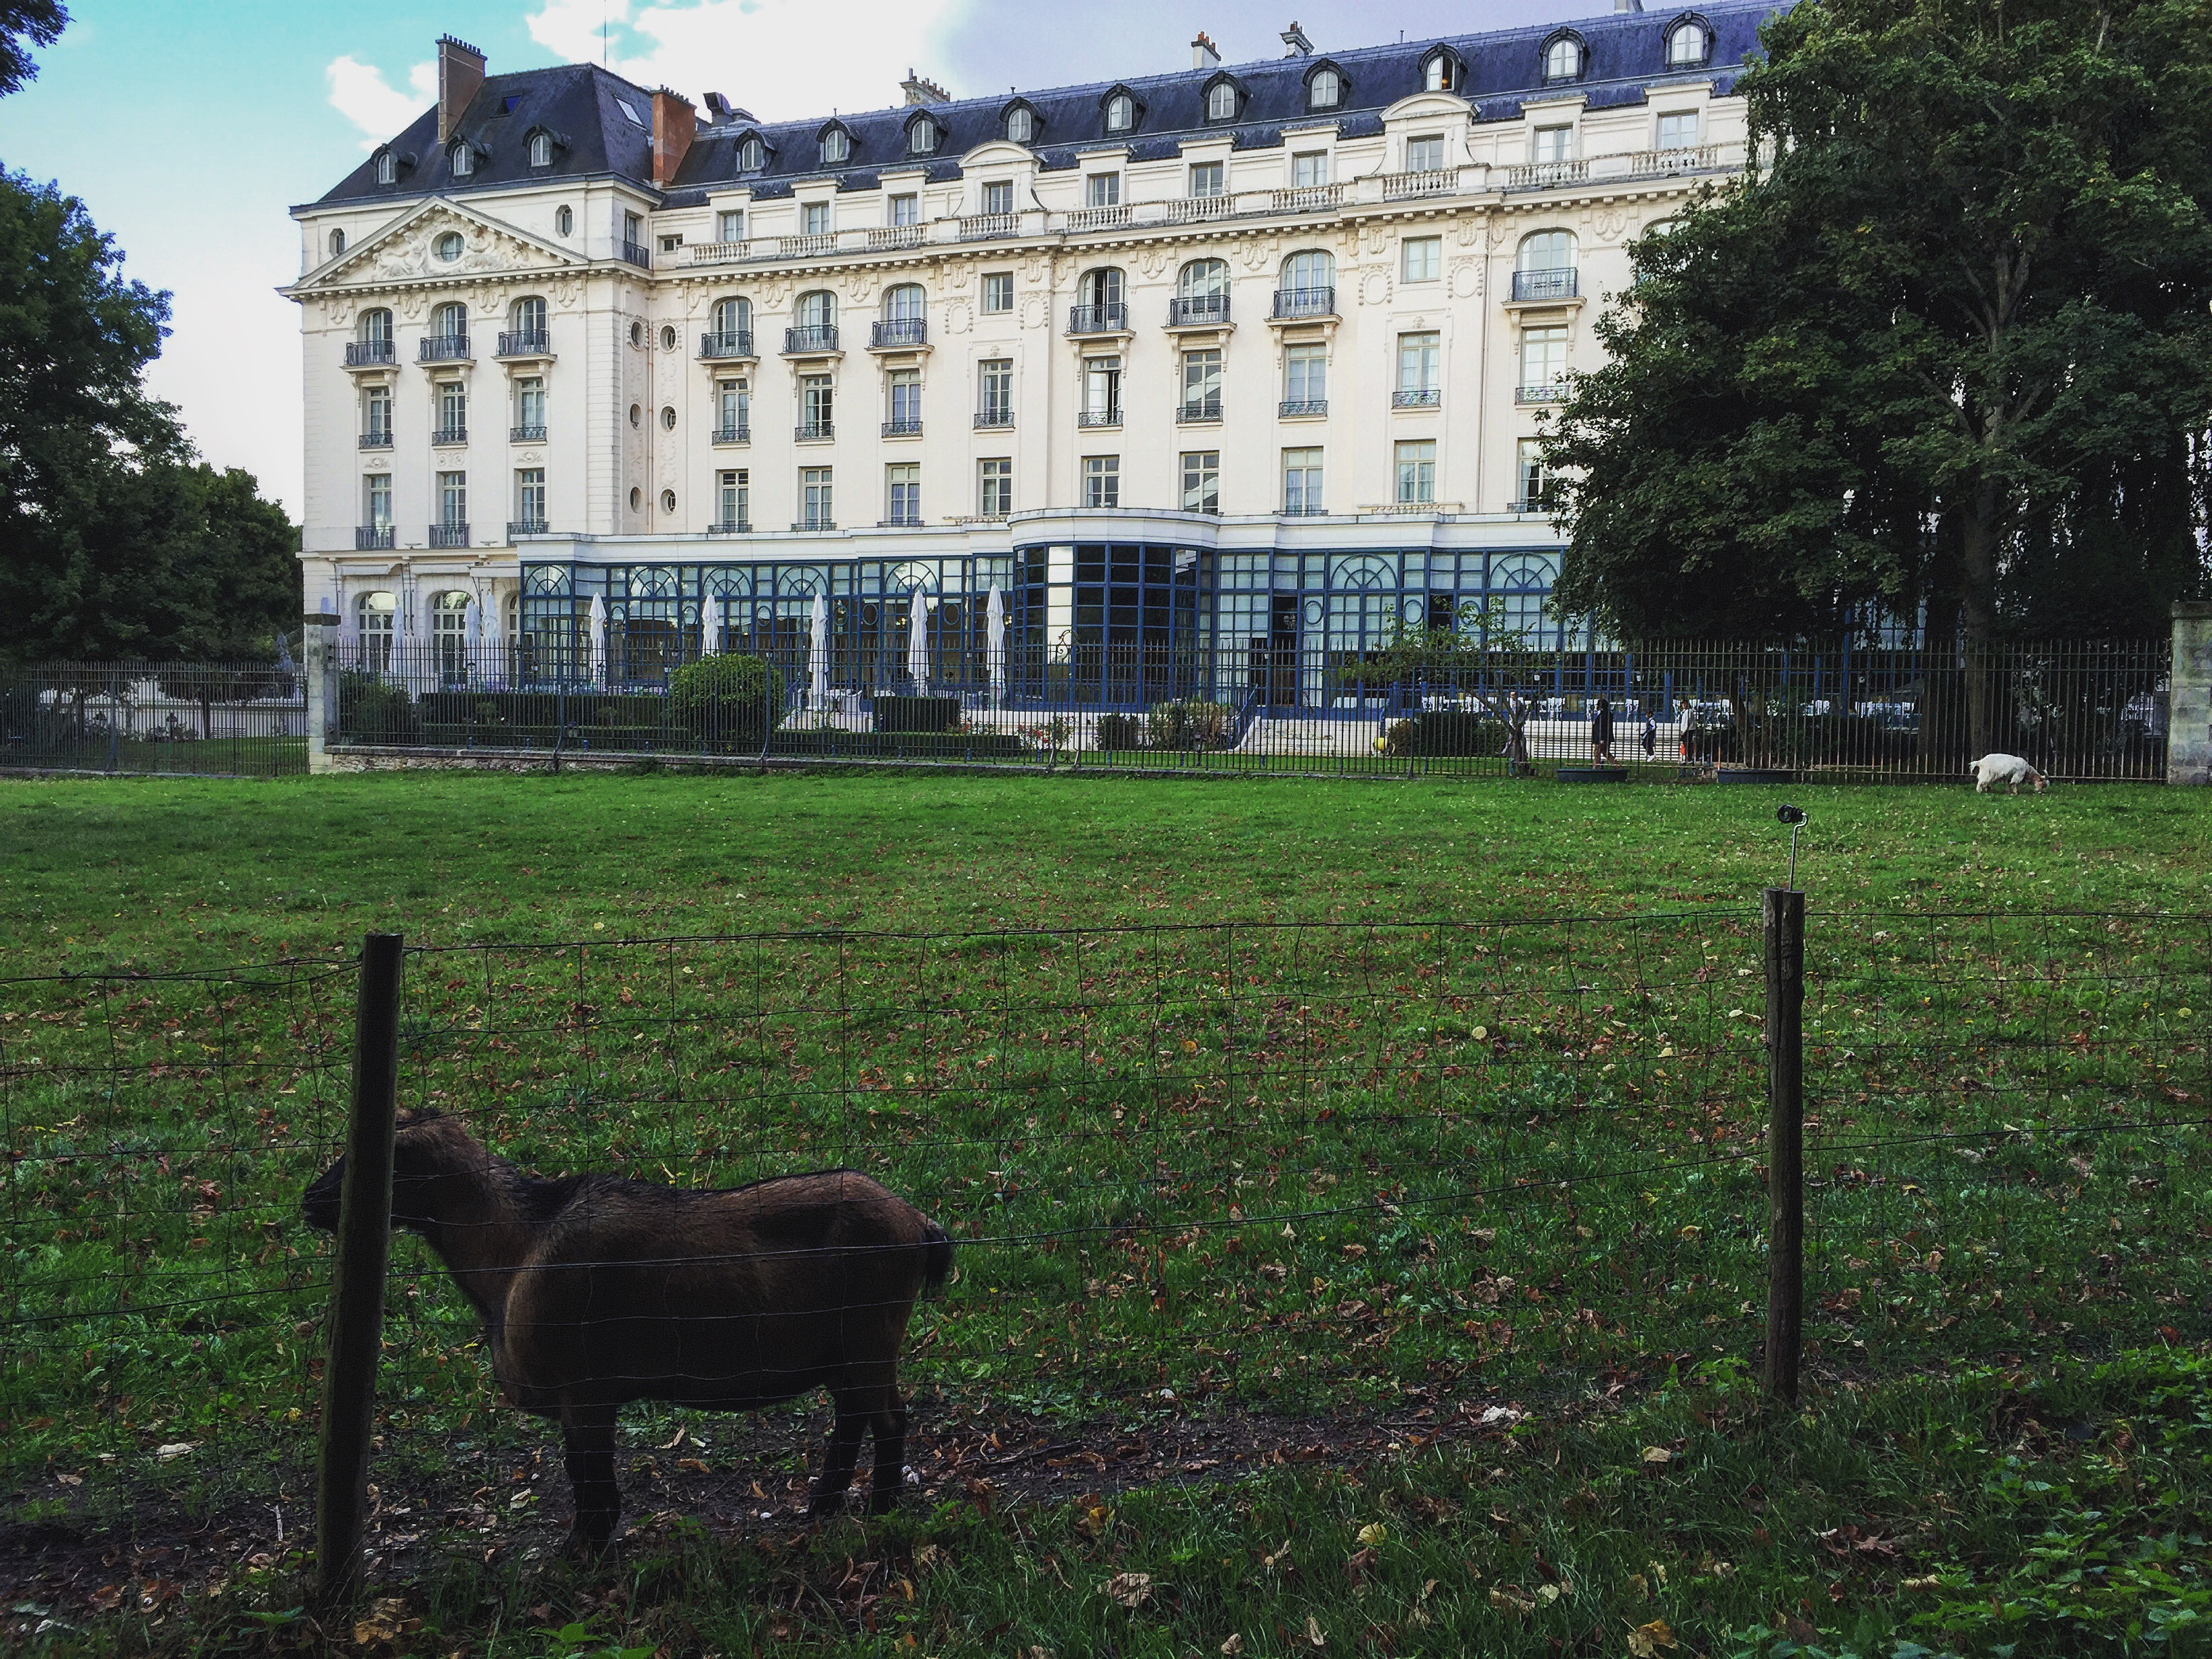 Goats farm along Allée des Moutons with the Trianon Palace in the background